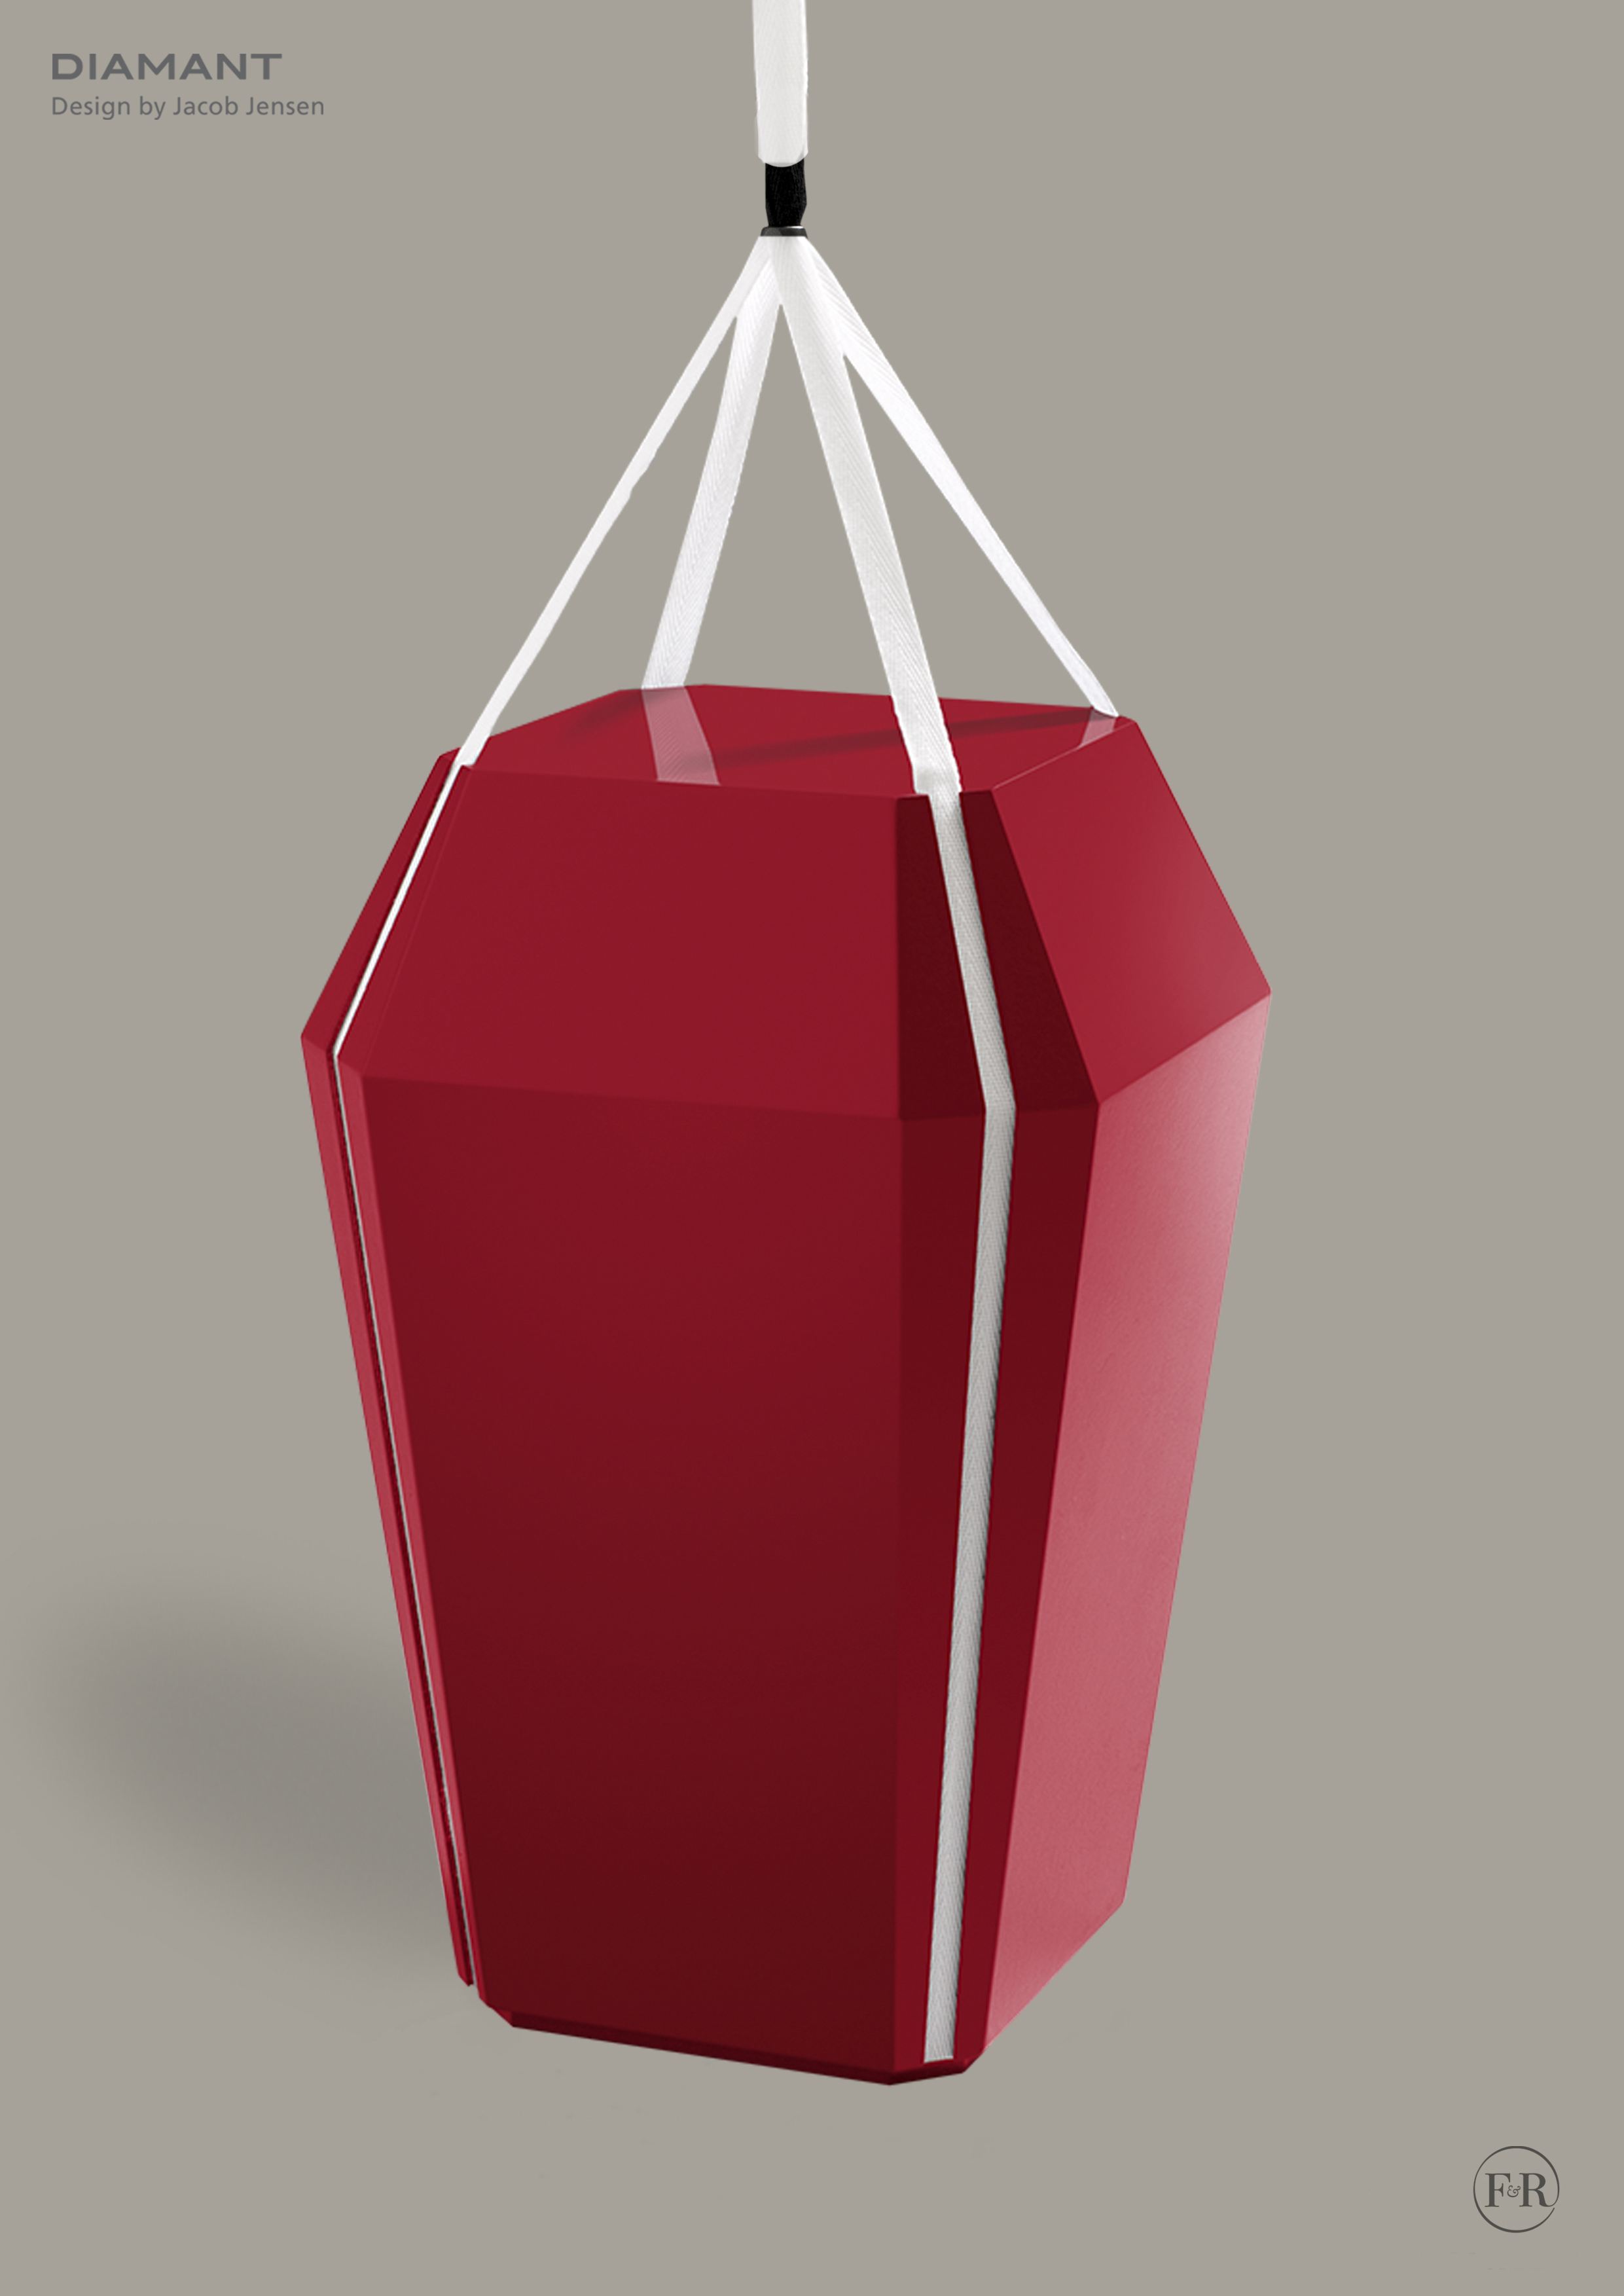 20940 Diamant Urn Glossy-red A4.jpg